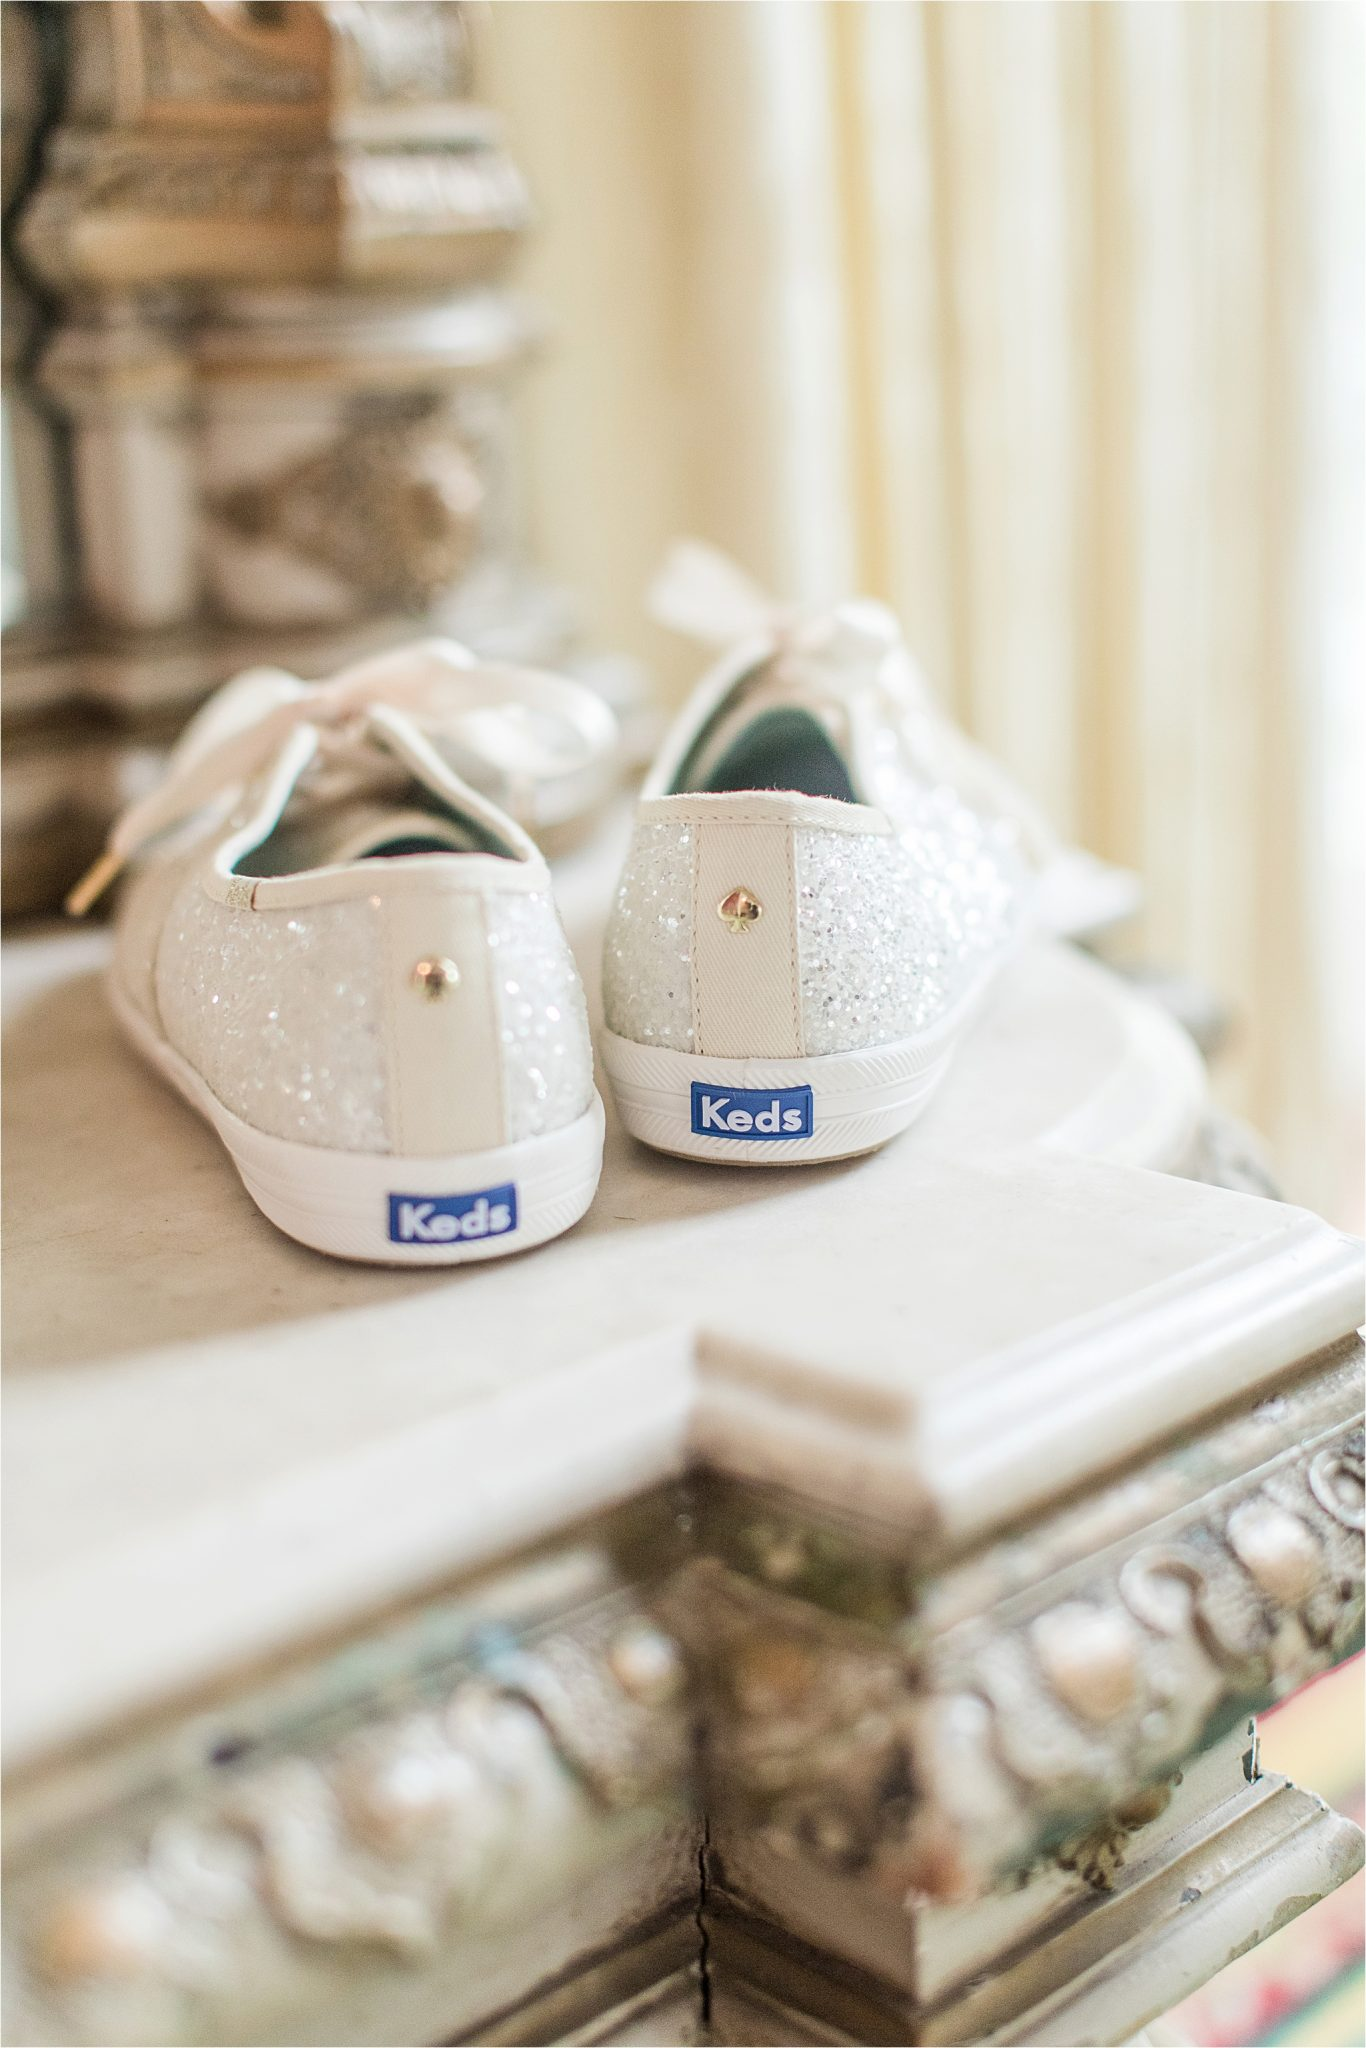 sparkly keds-bridal keds-bridal shoes-diamond studded kids-white-shinny